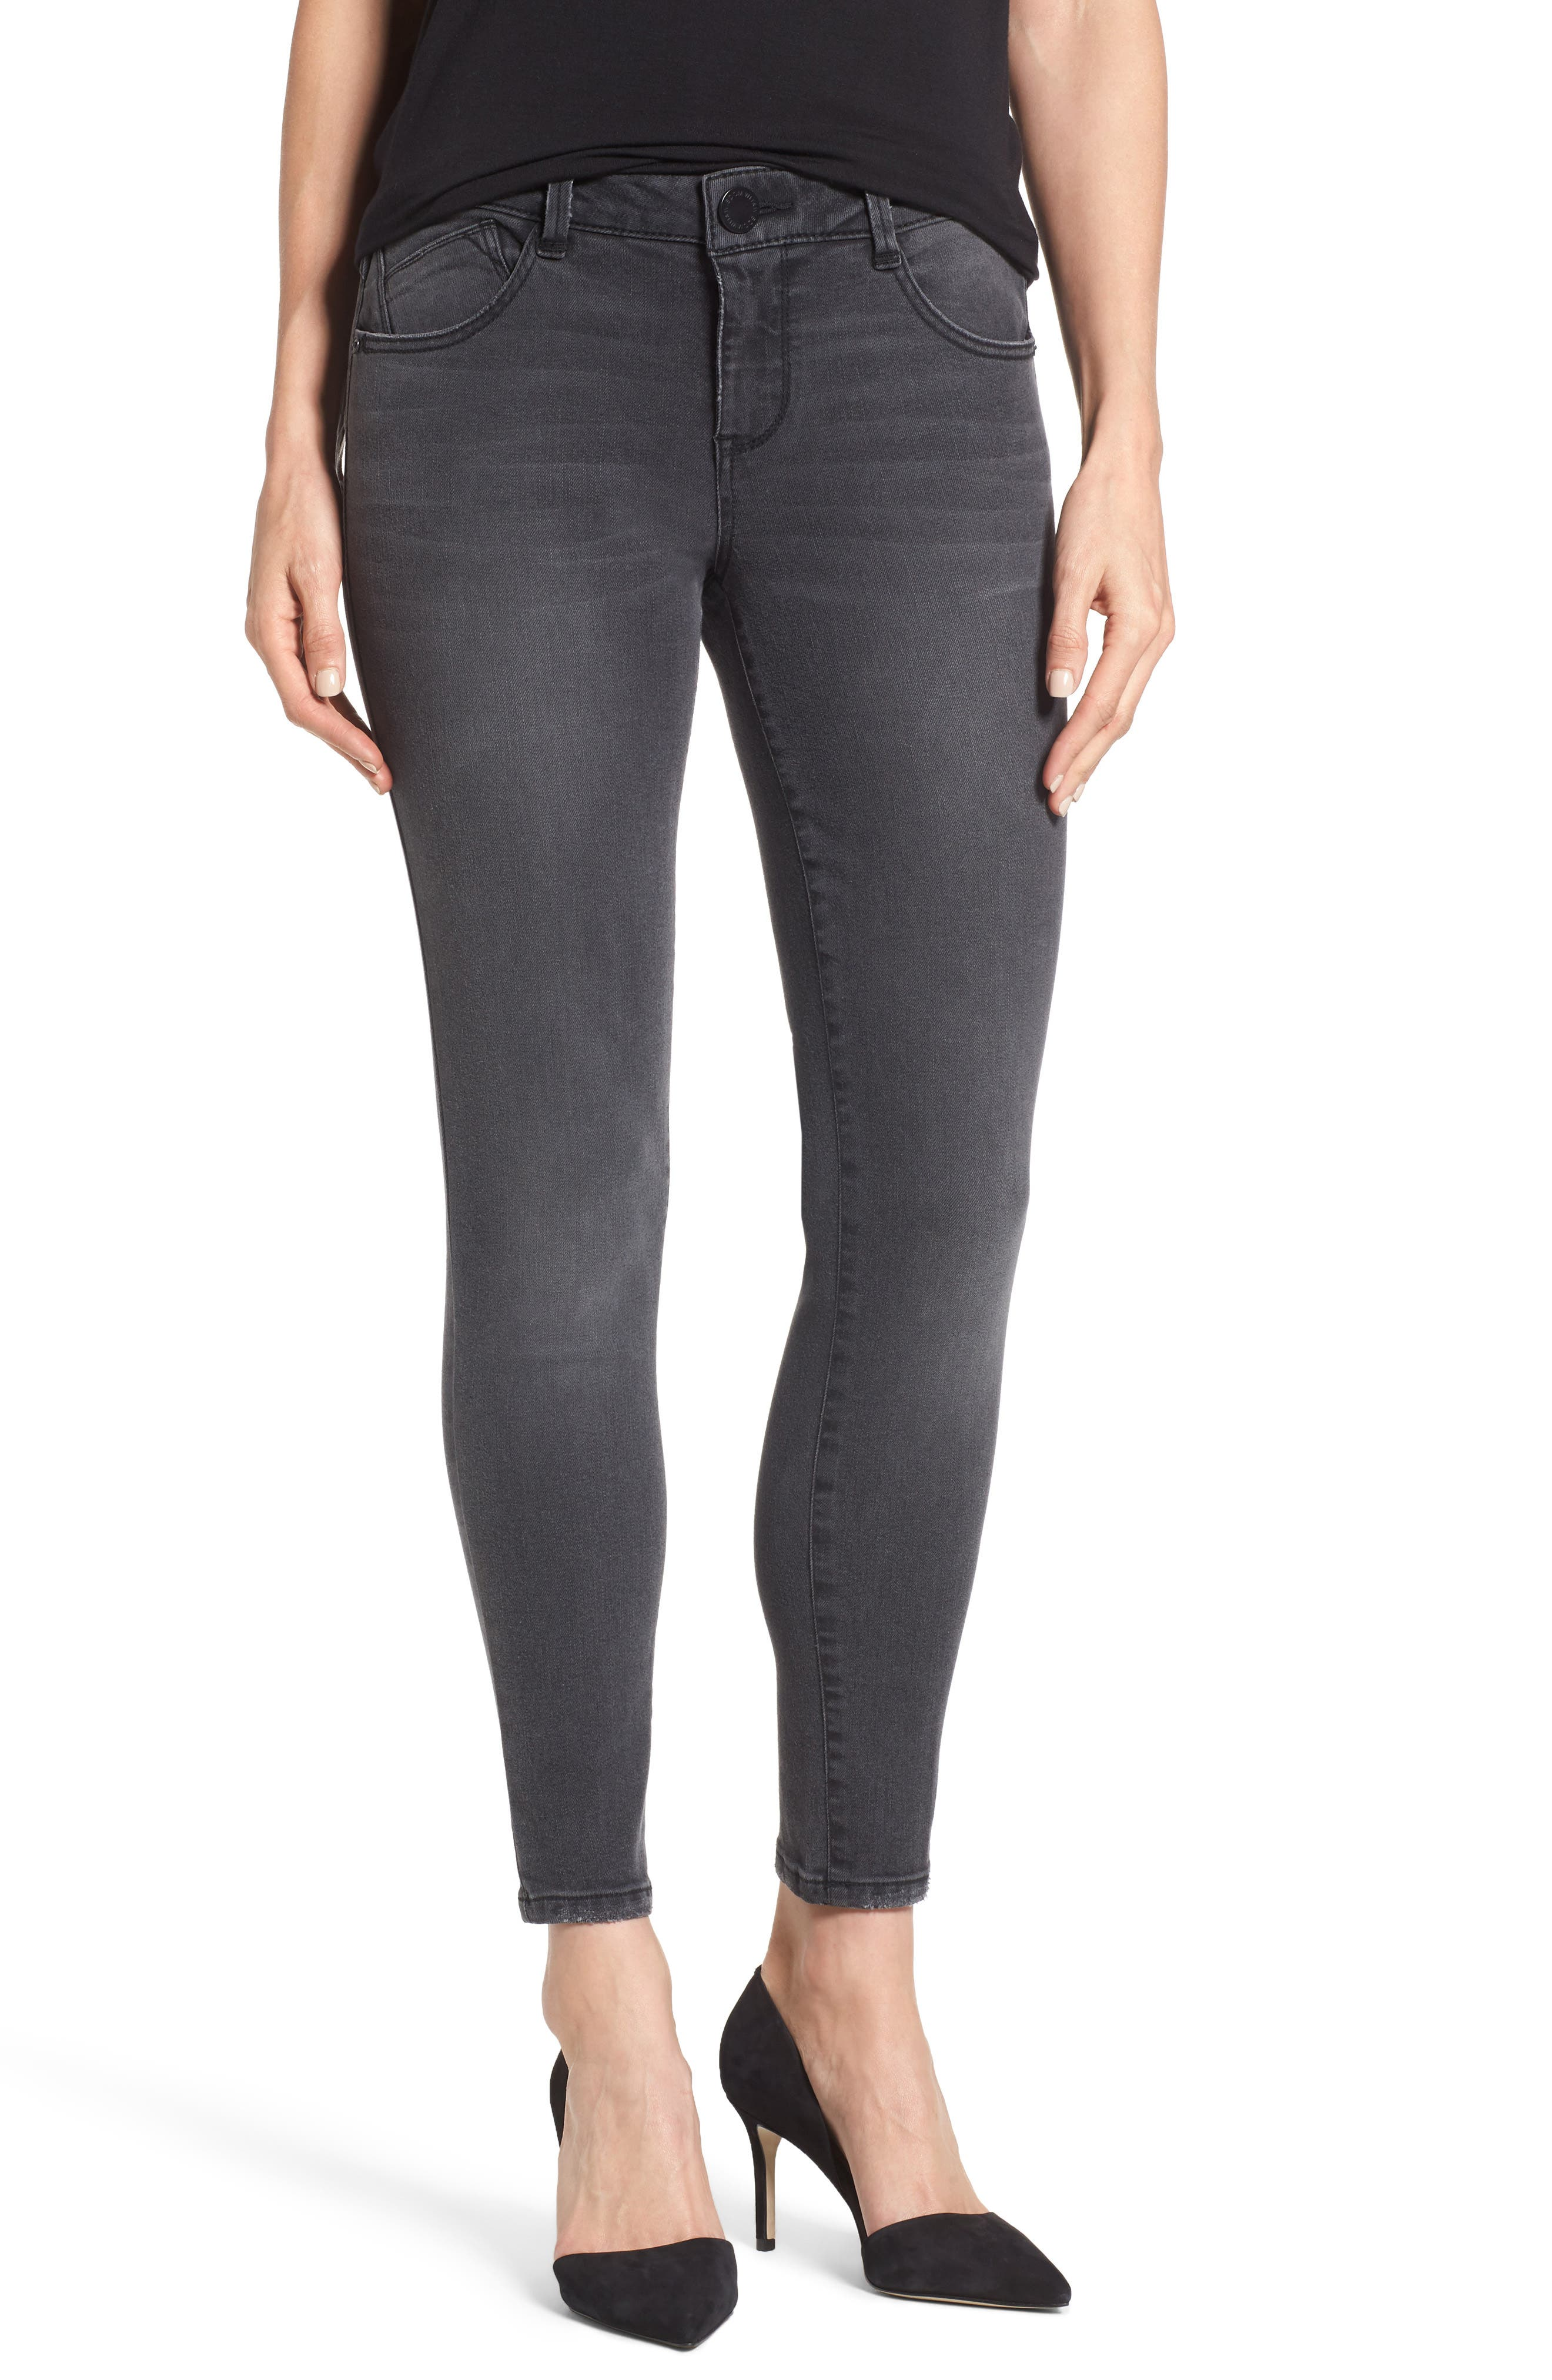 Main Image - Wit & Wisdom Skinny Ankle Jeans (Nordstrom Exclusive) (Regular & Petite)